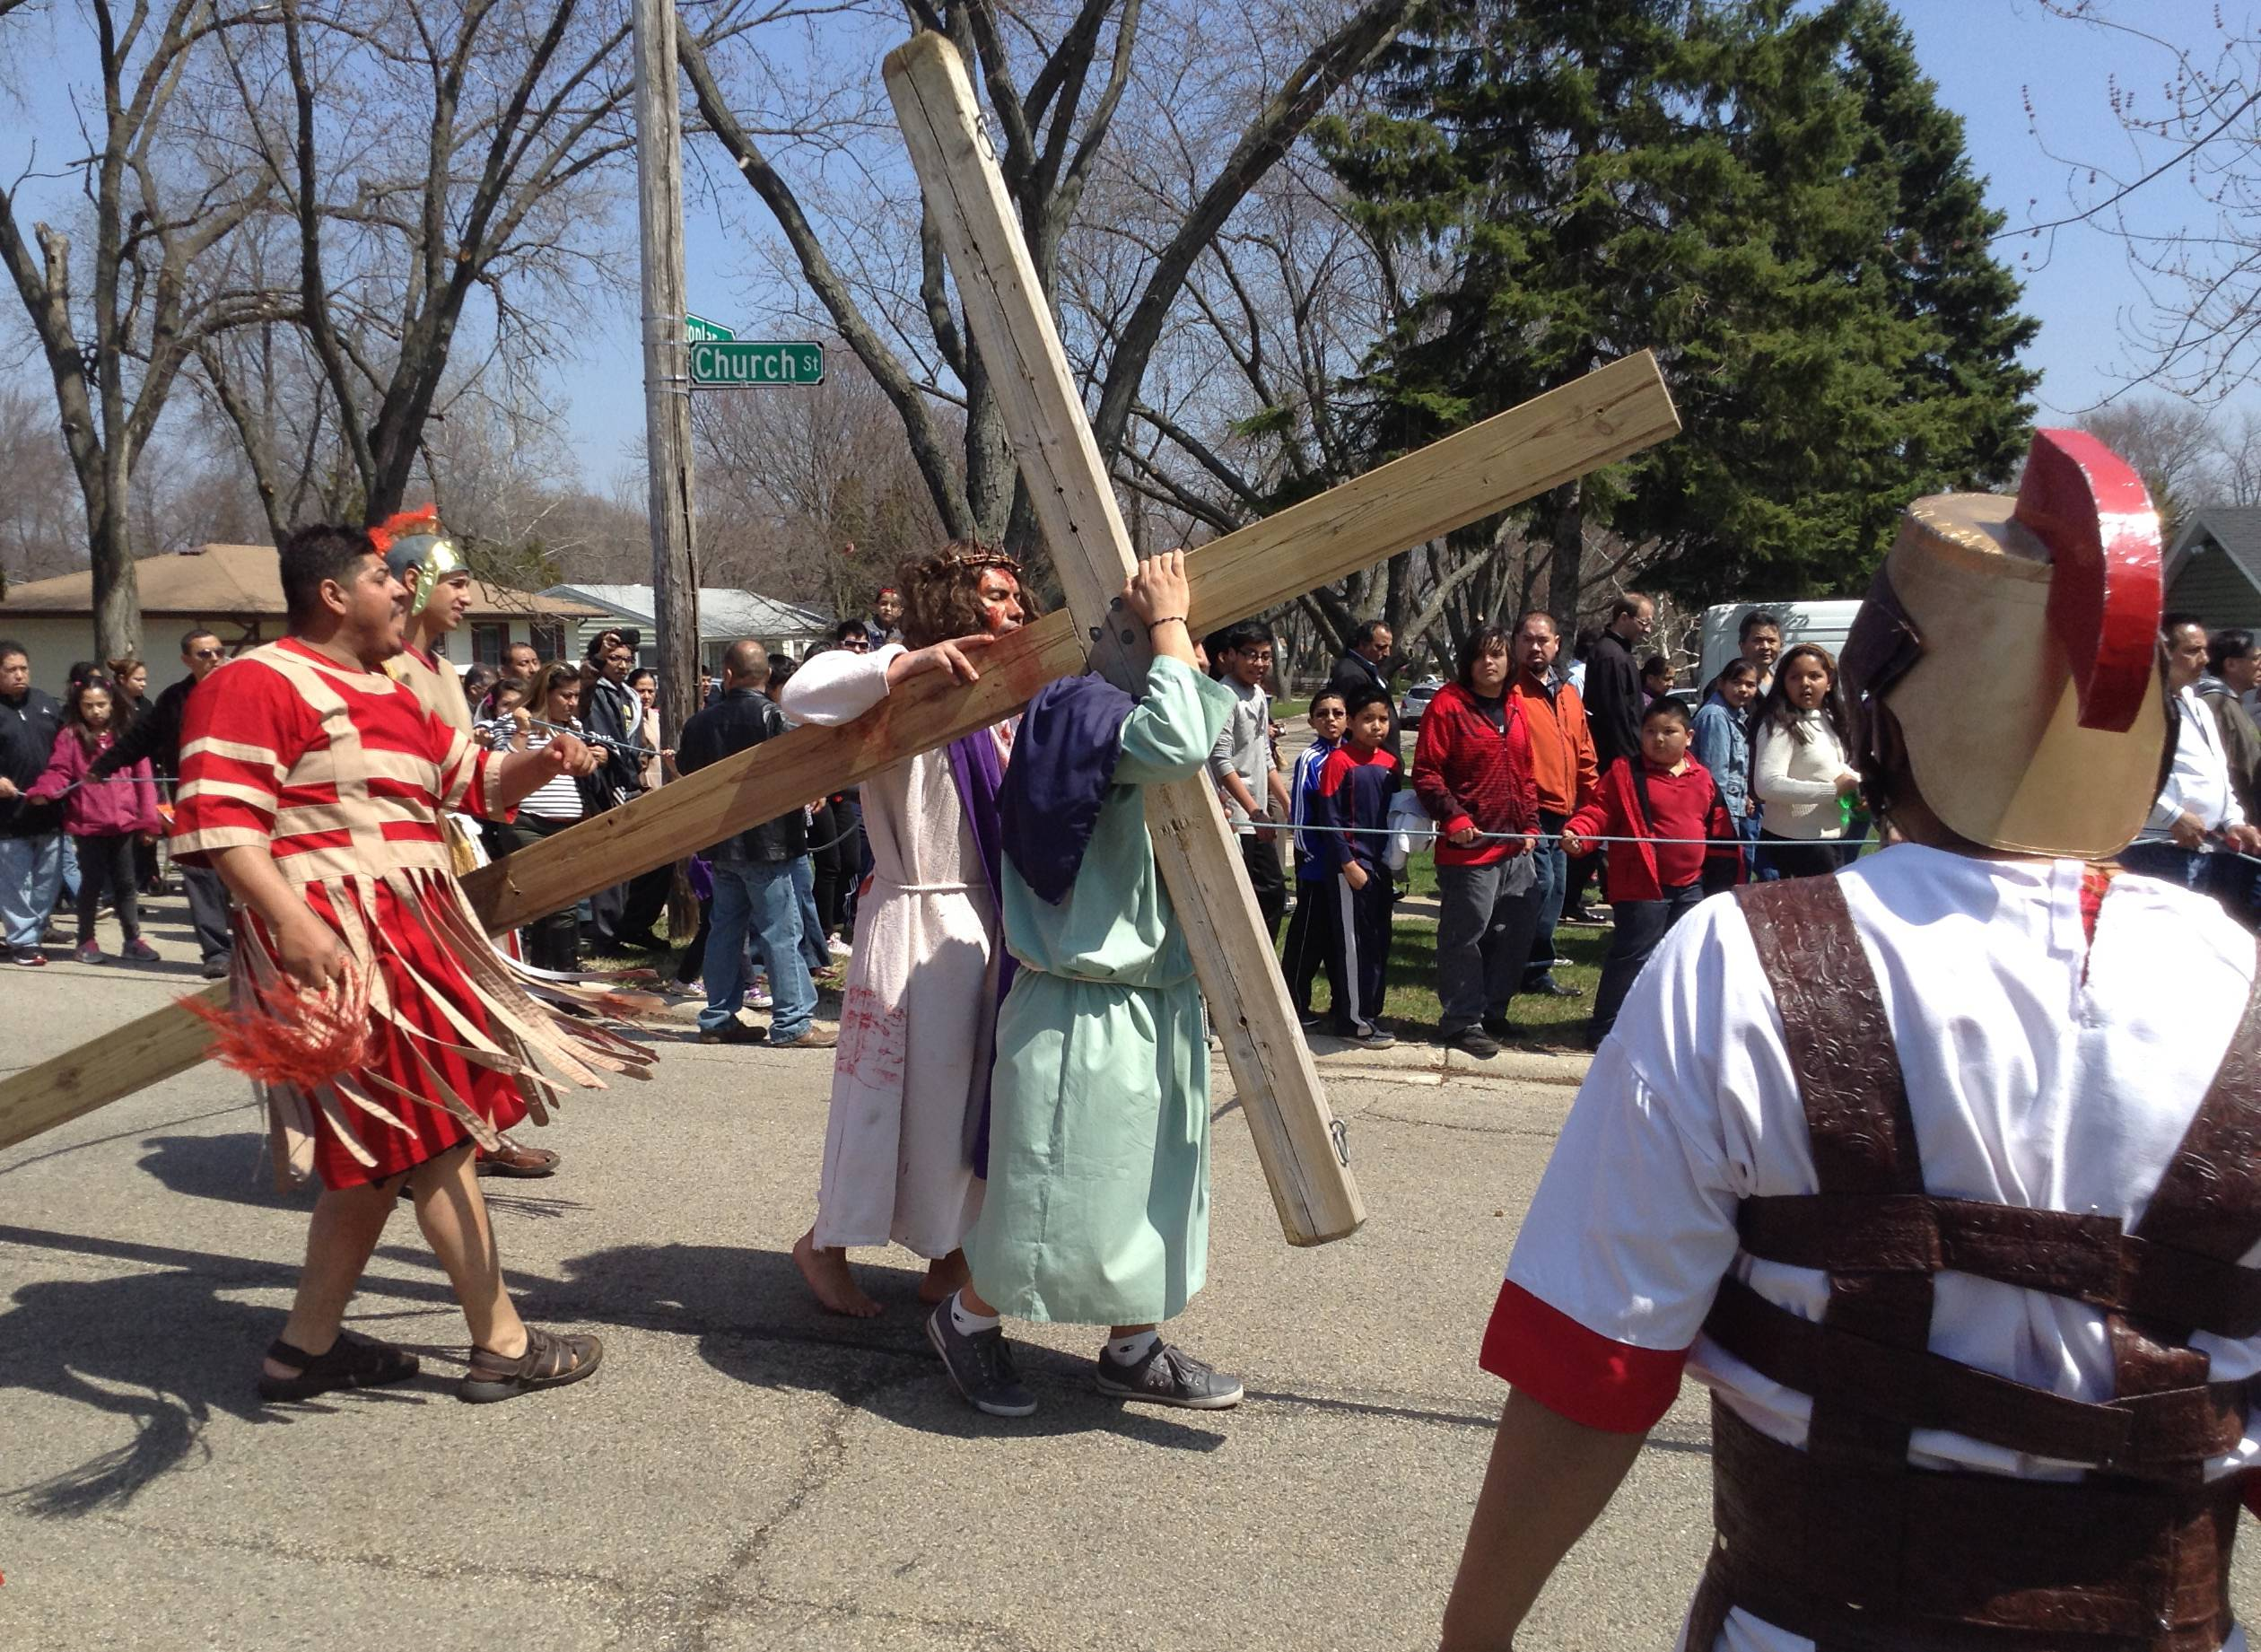 A barefoot Isidro Zuniga carried a wooden cross for more than mile through a Hanover Park neighborhood Friday.